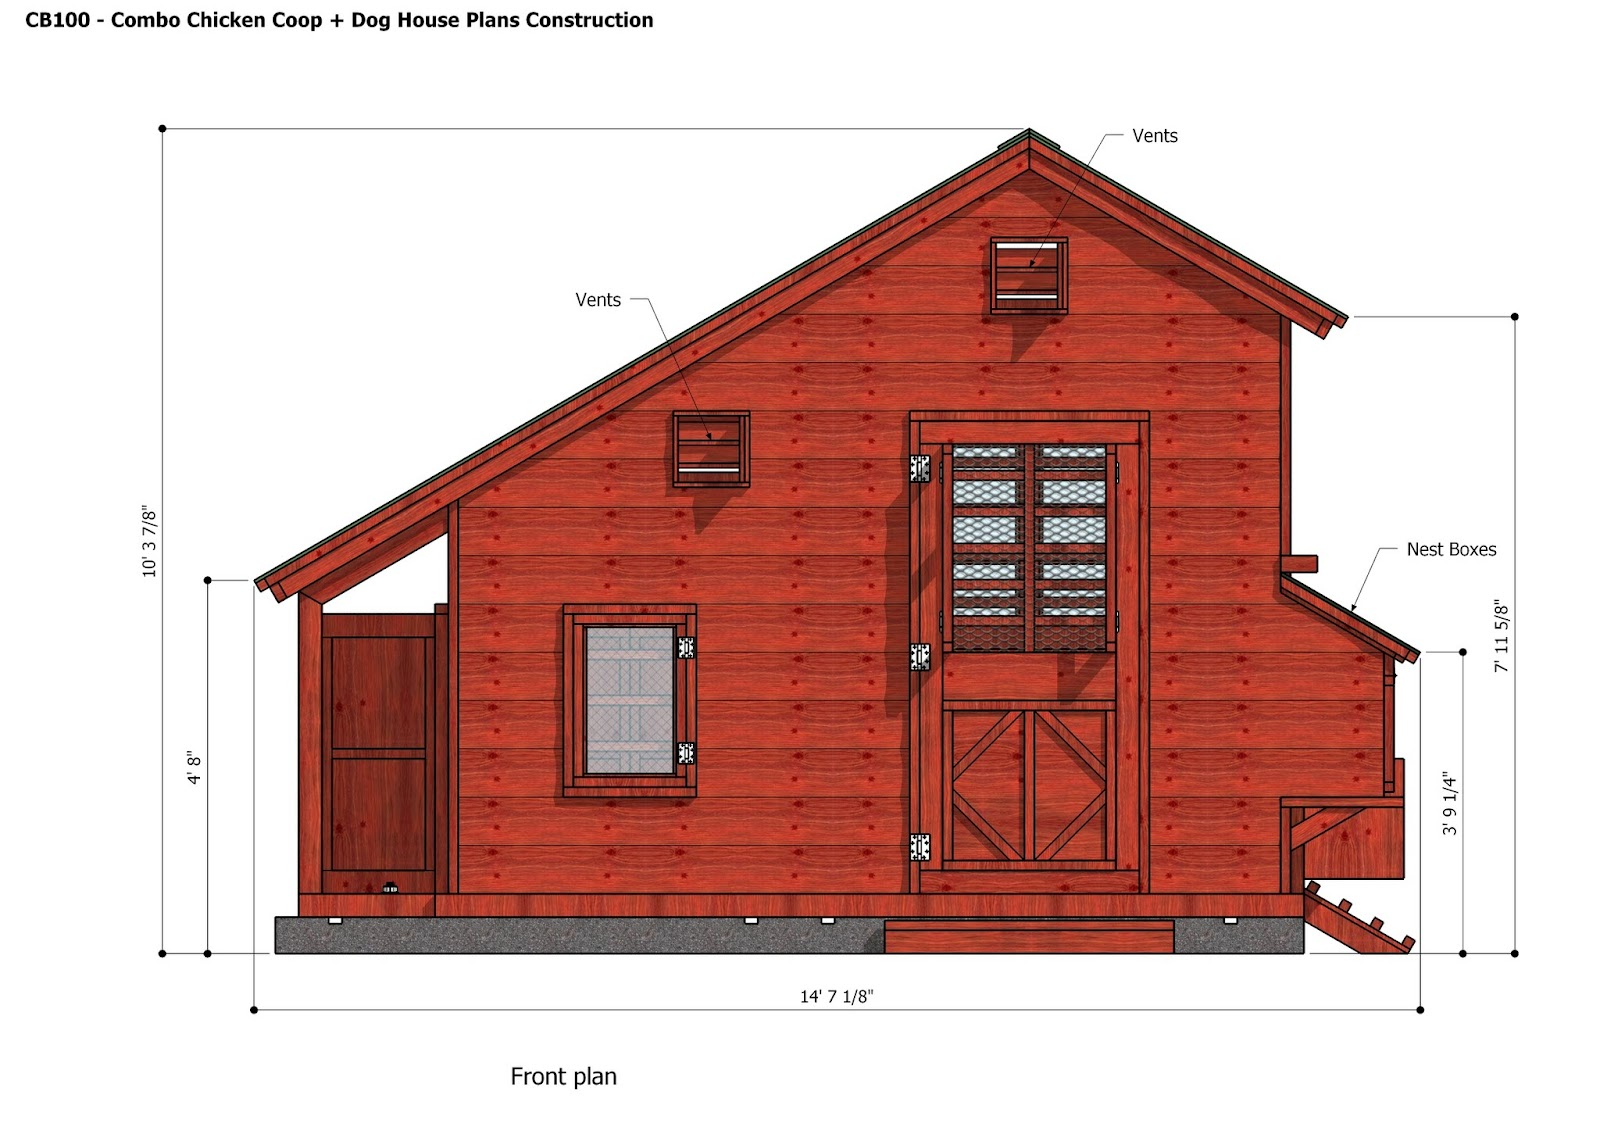 Insulated Dog House Plans Pdf Woodworking P Looking For Insulated Dog House Plans Pdf